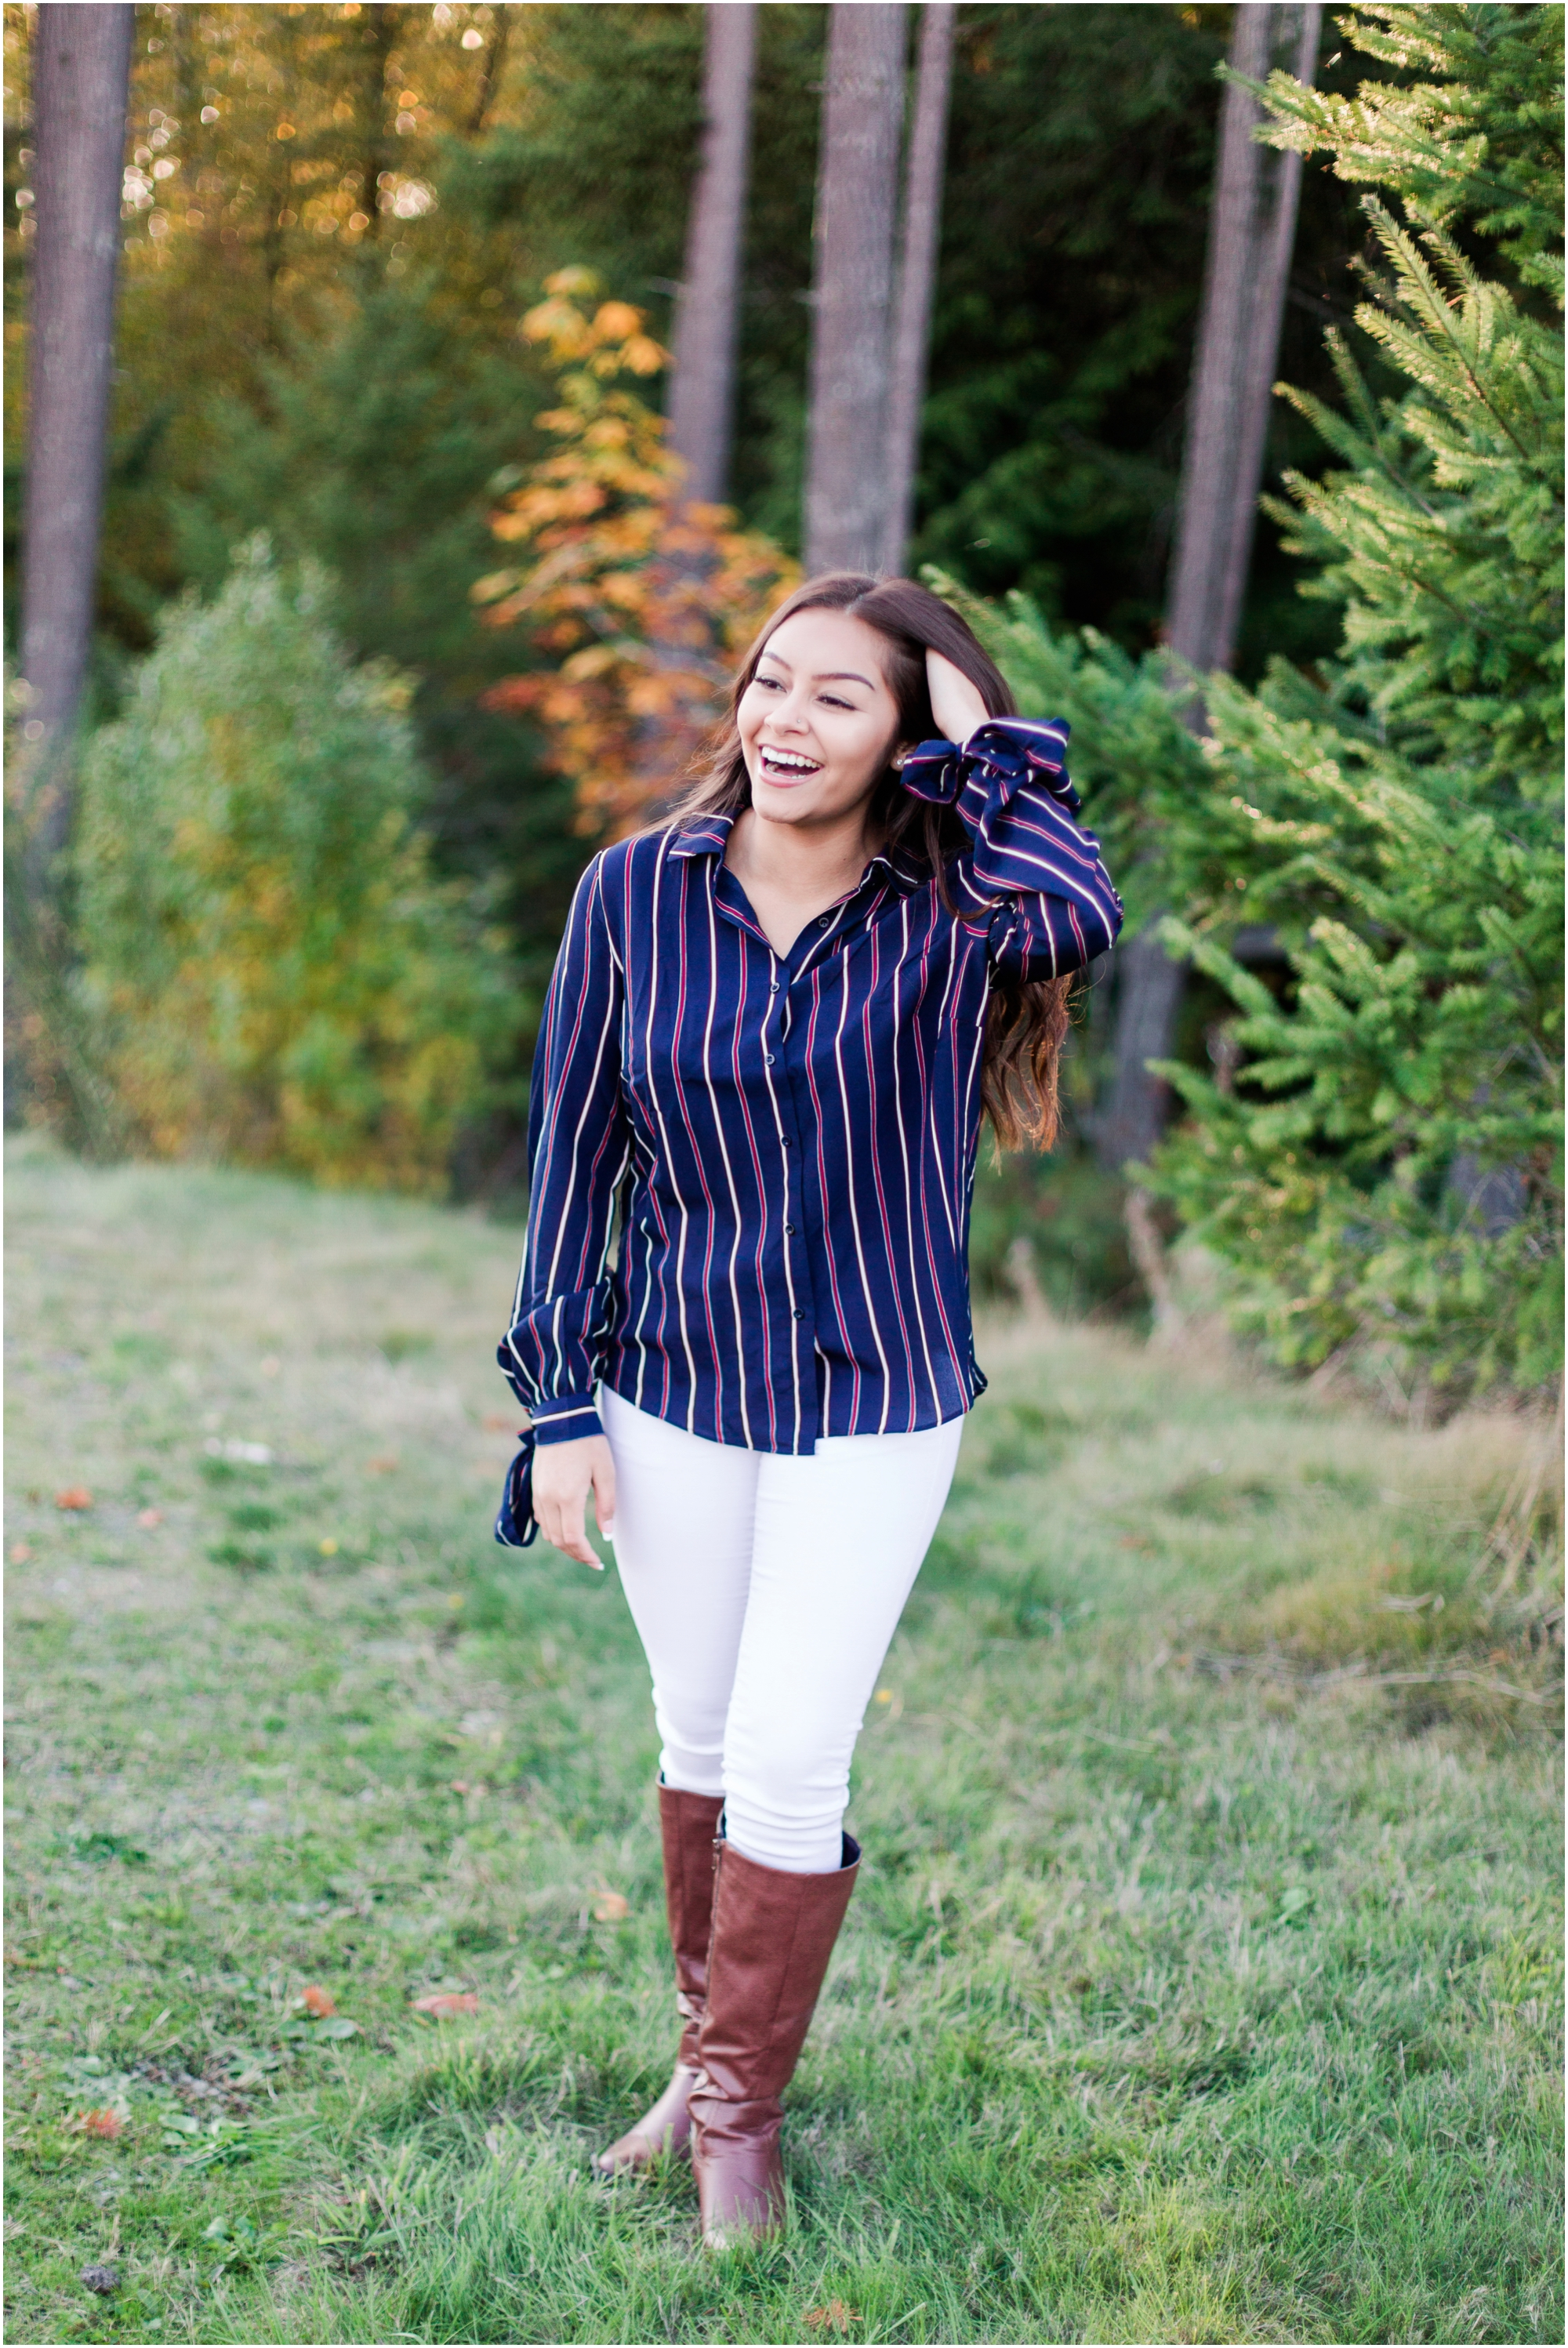 High School Senior portriats by Briana Calderon Photography based in the Greater Seattle & Tacoma, WA_0945.jpg